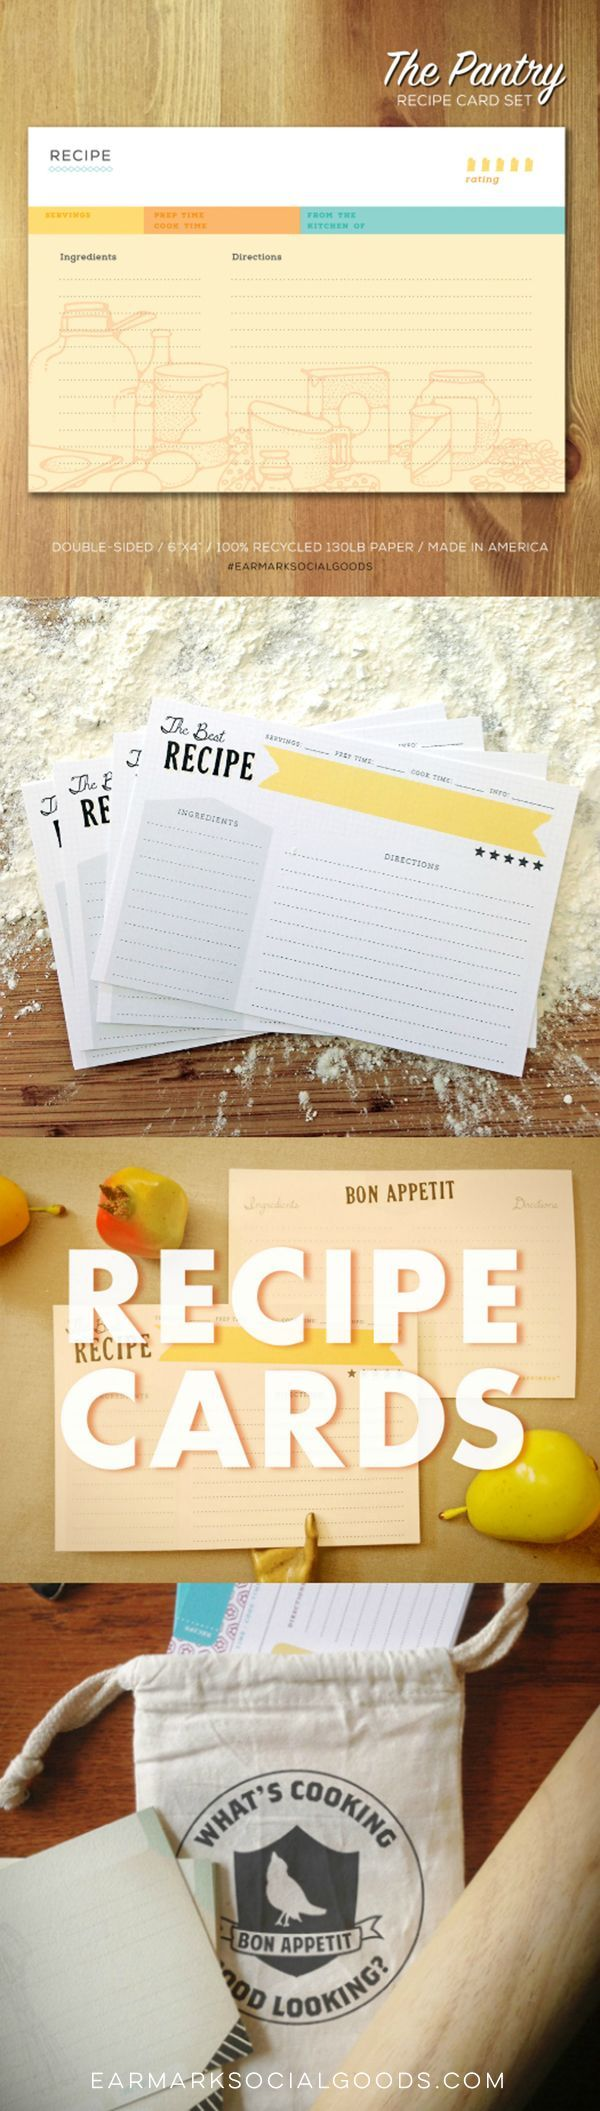 50 best fireflies applepies images on pinterest fireflies fun selection of recycled double sided handmade recipe card sets recipecards biocorpaavc